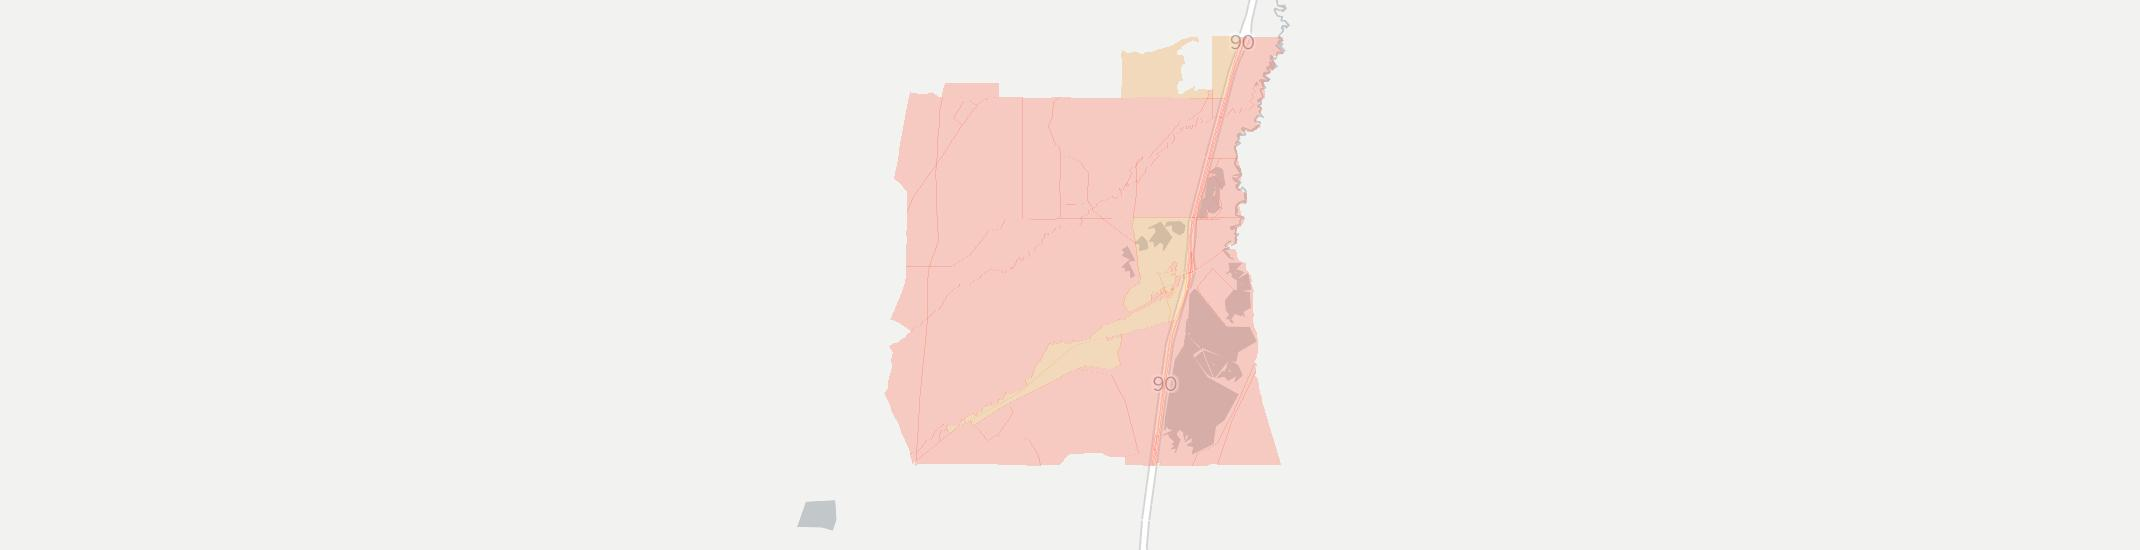 Warm Springs Internet Competition Map. Click for interactive map.